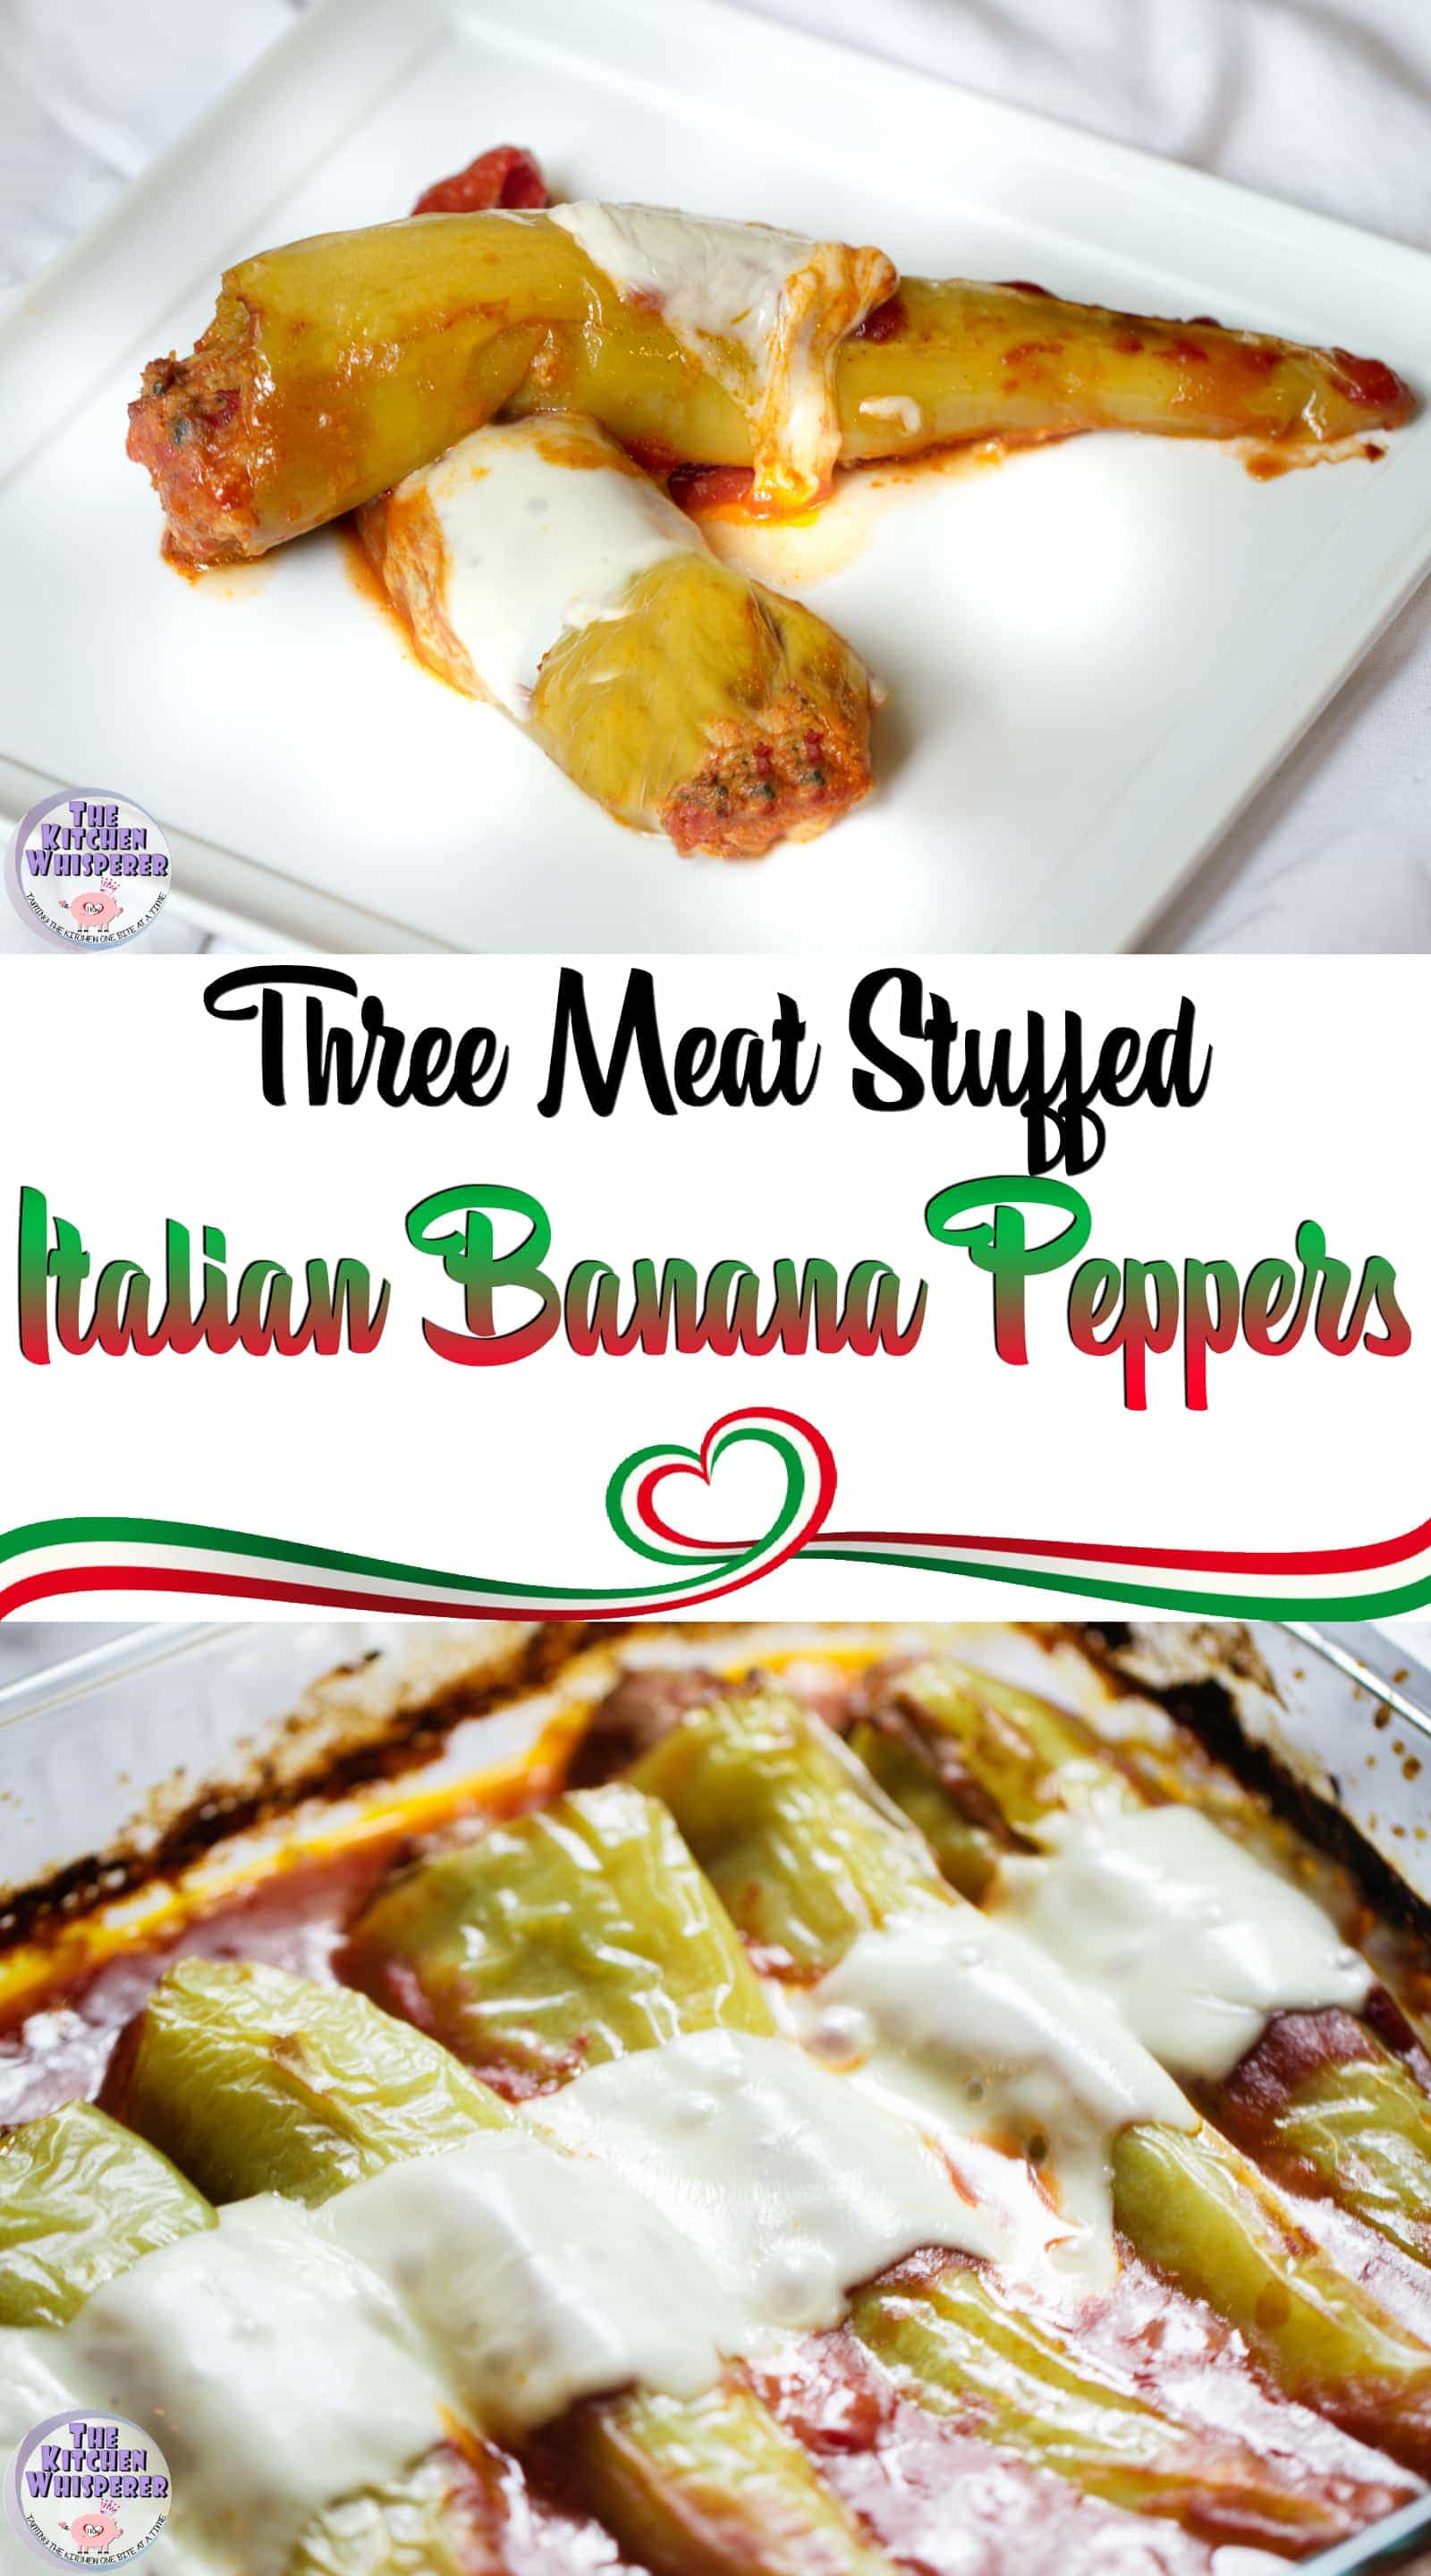 Italian Meat Stuffed Banana Peppers